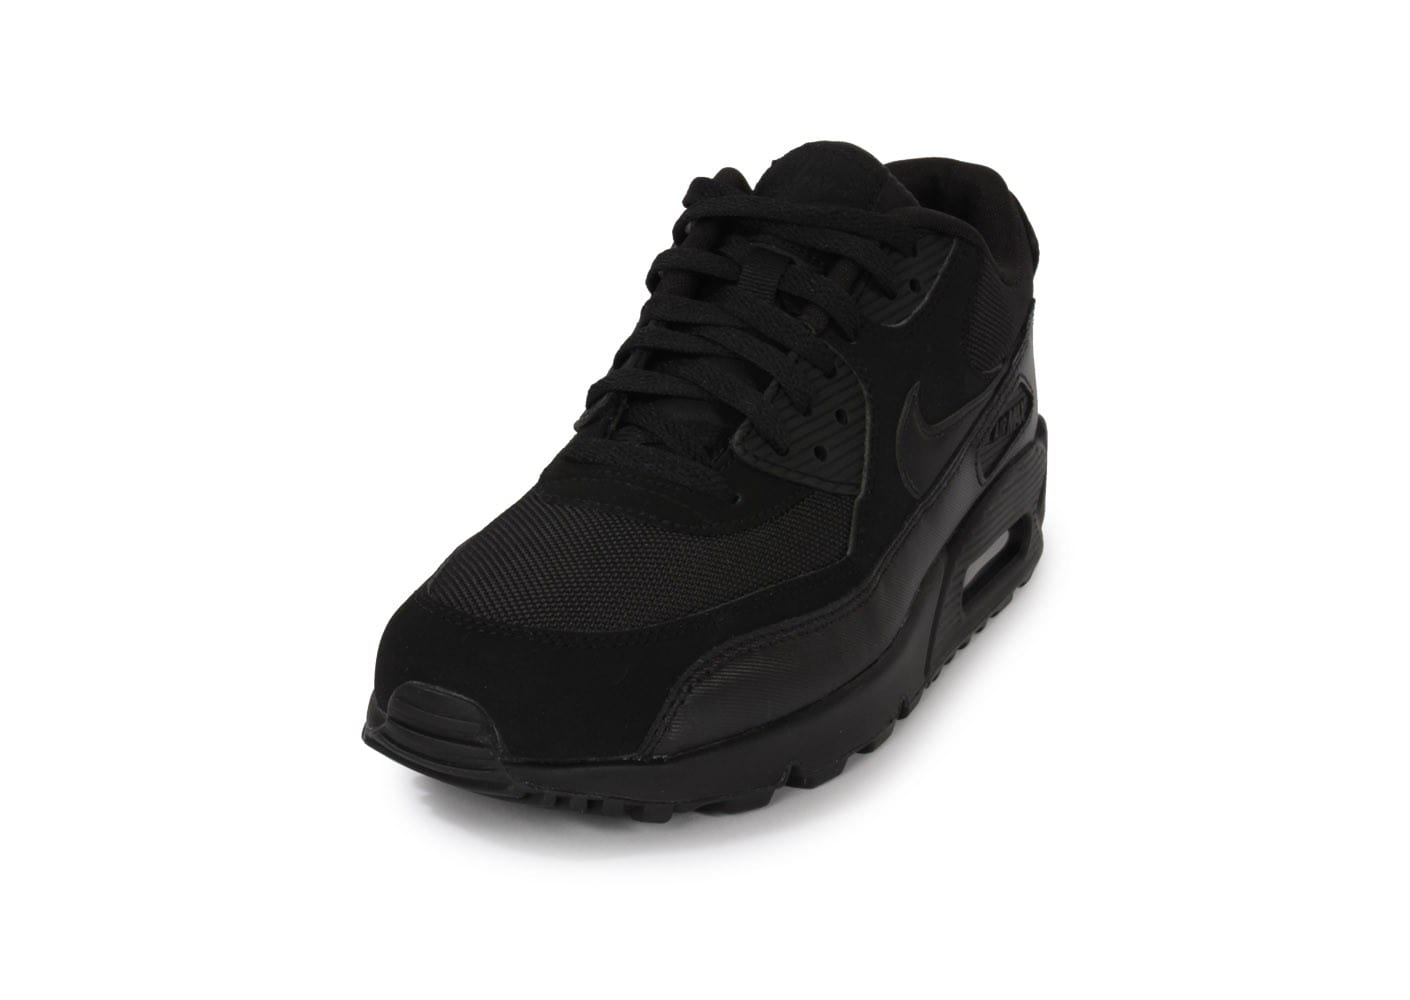 new style 57b0f dcb0b Nike Air Max 90 Noire - Chaussures Baskets homme - Chausport